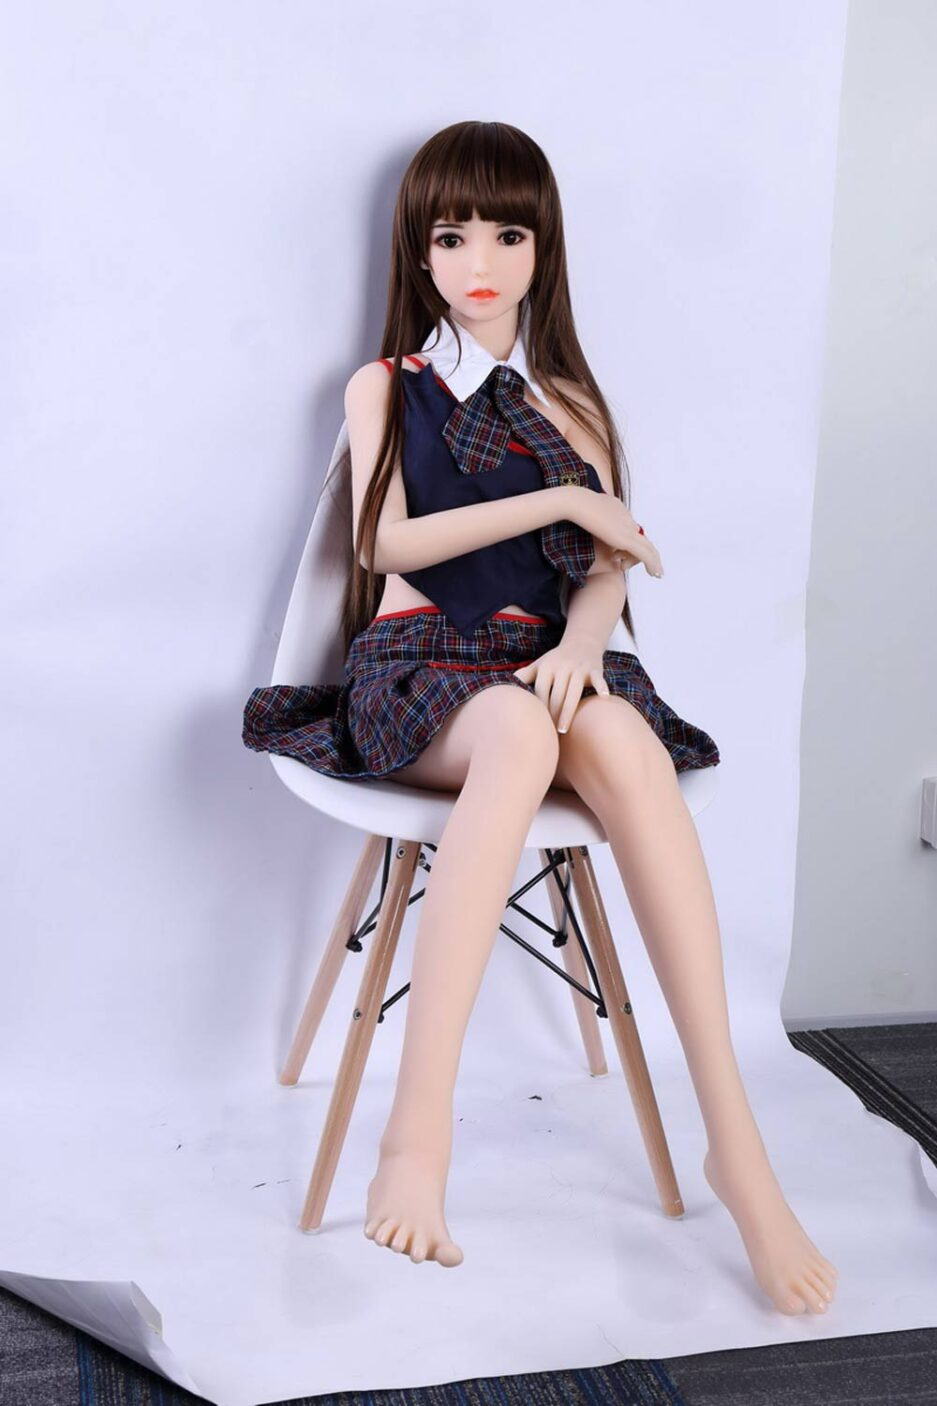 Mini sex doll with the other arm